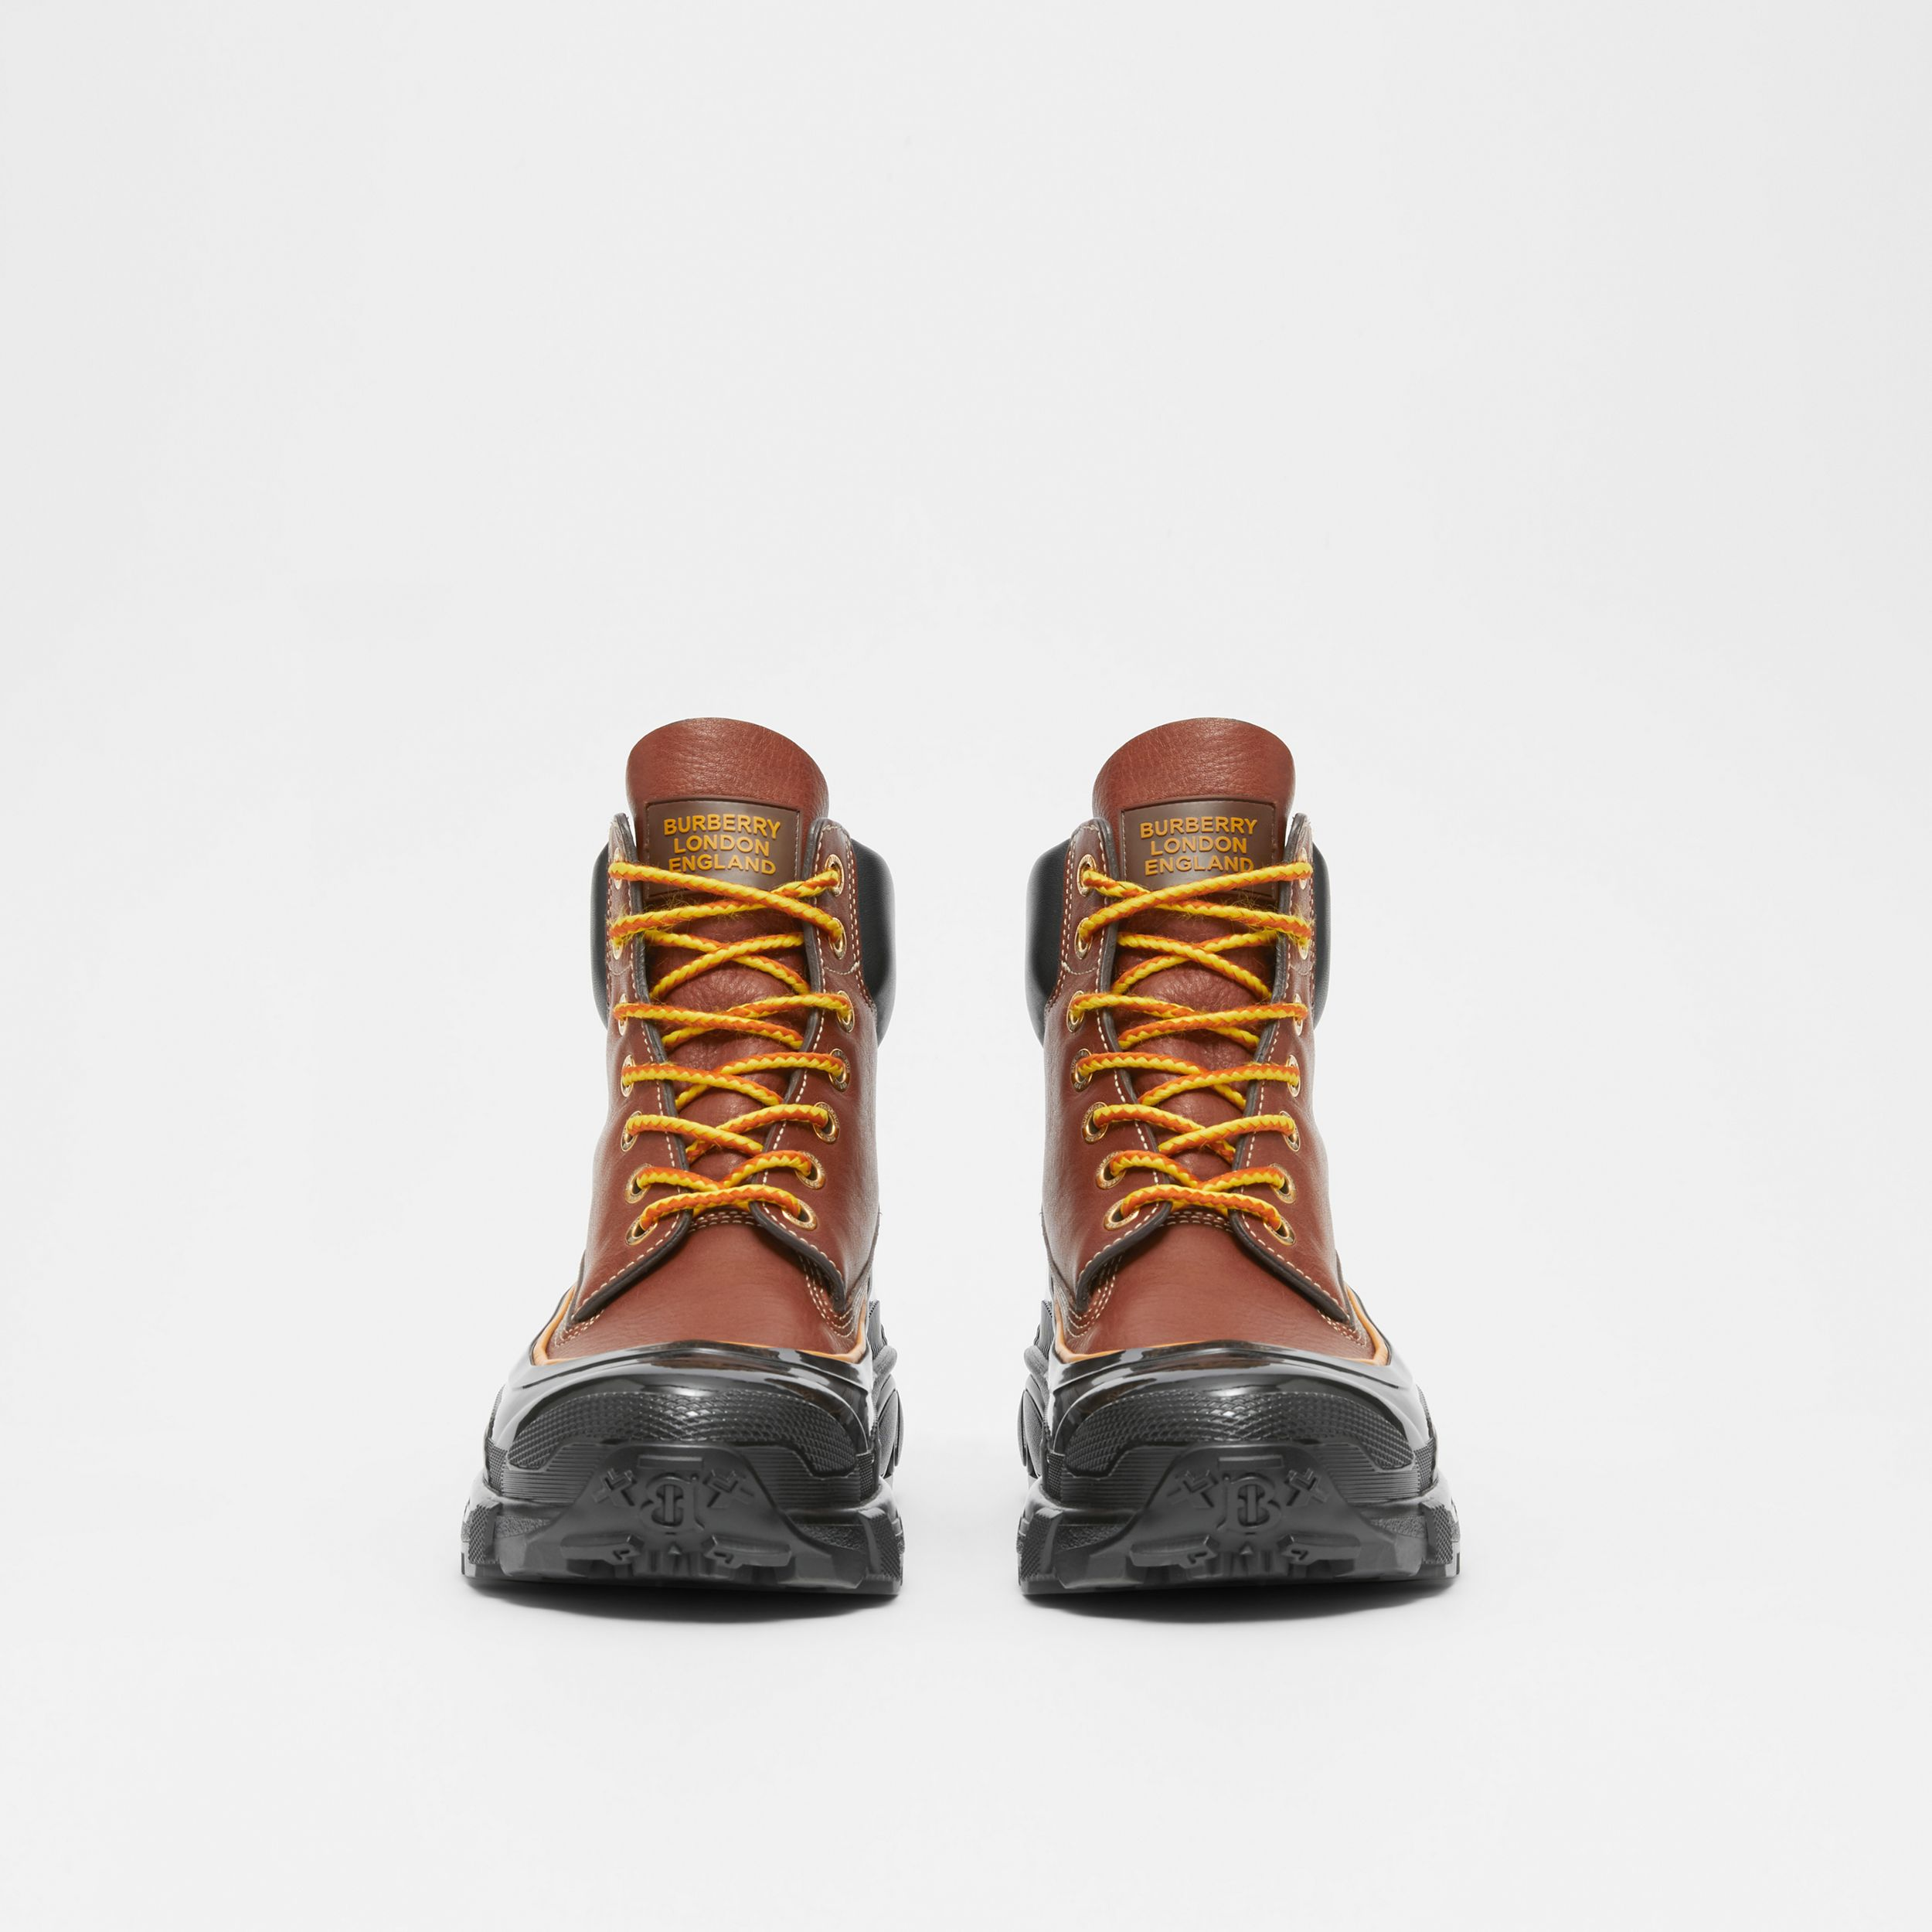 Contrast Sole Leather Boots in Tan - Men | Burberry - 4